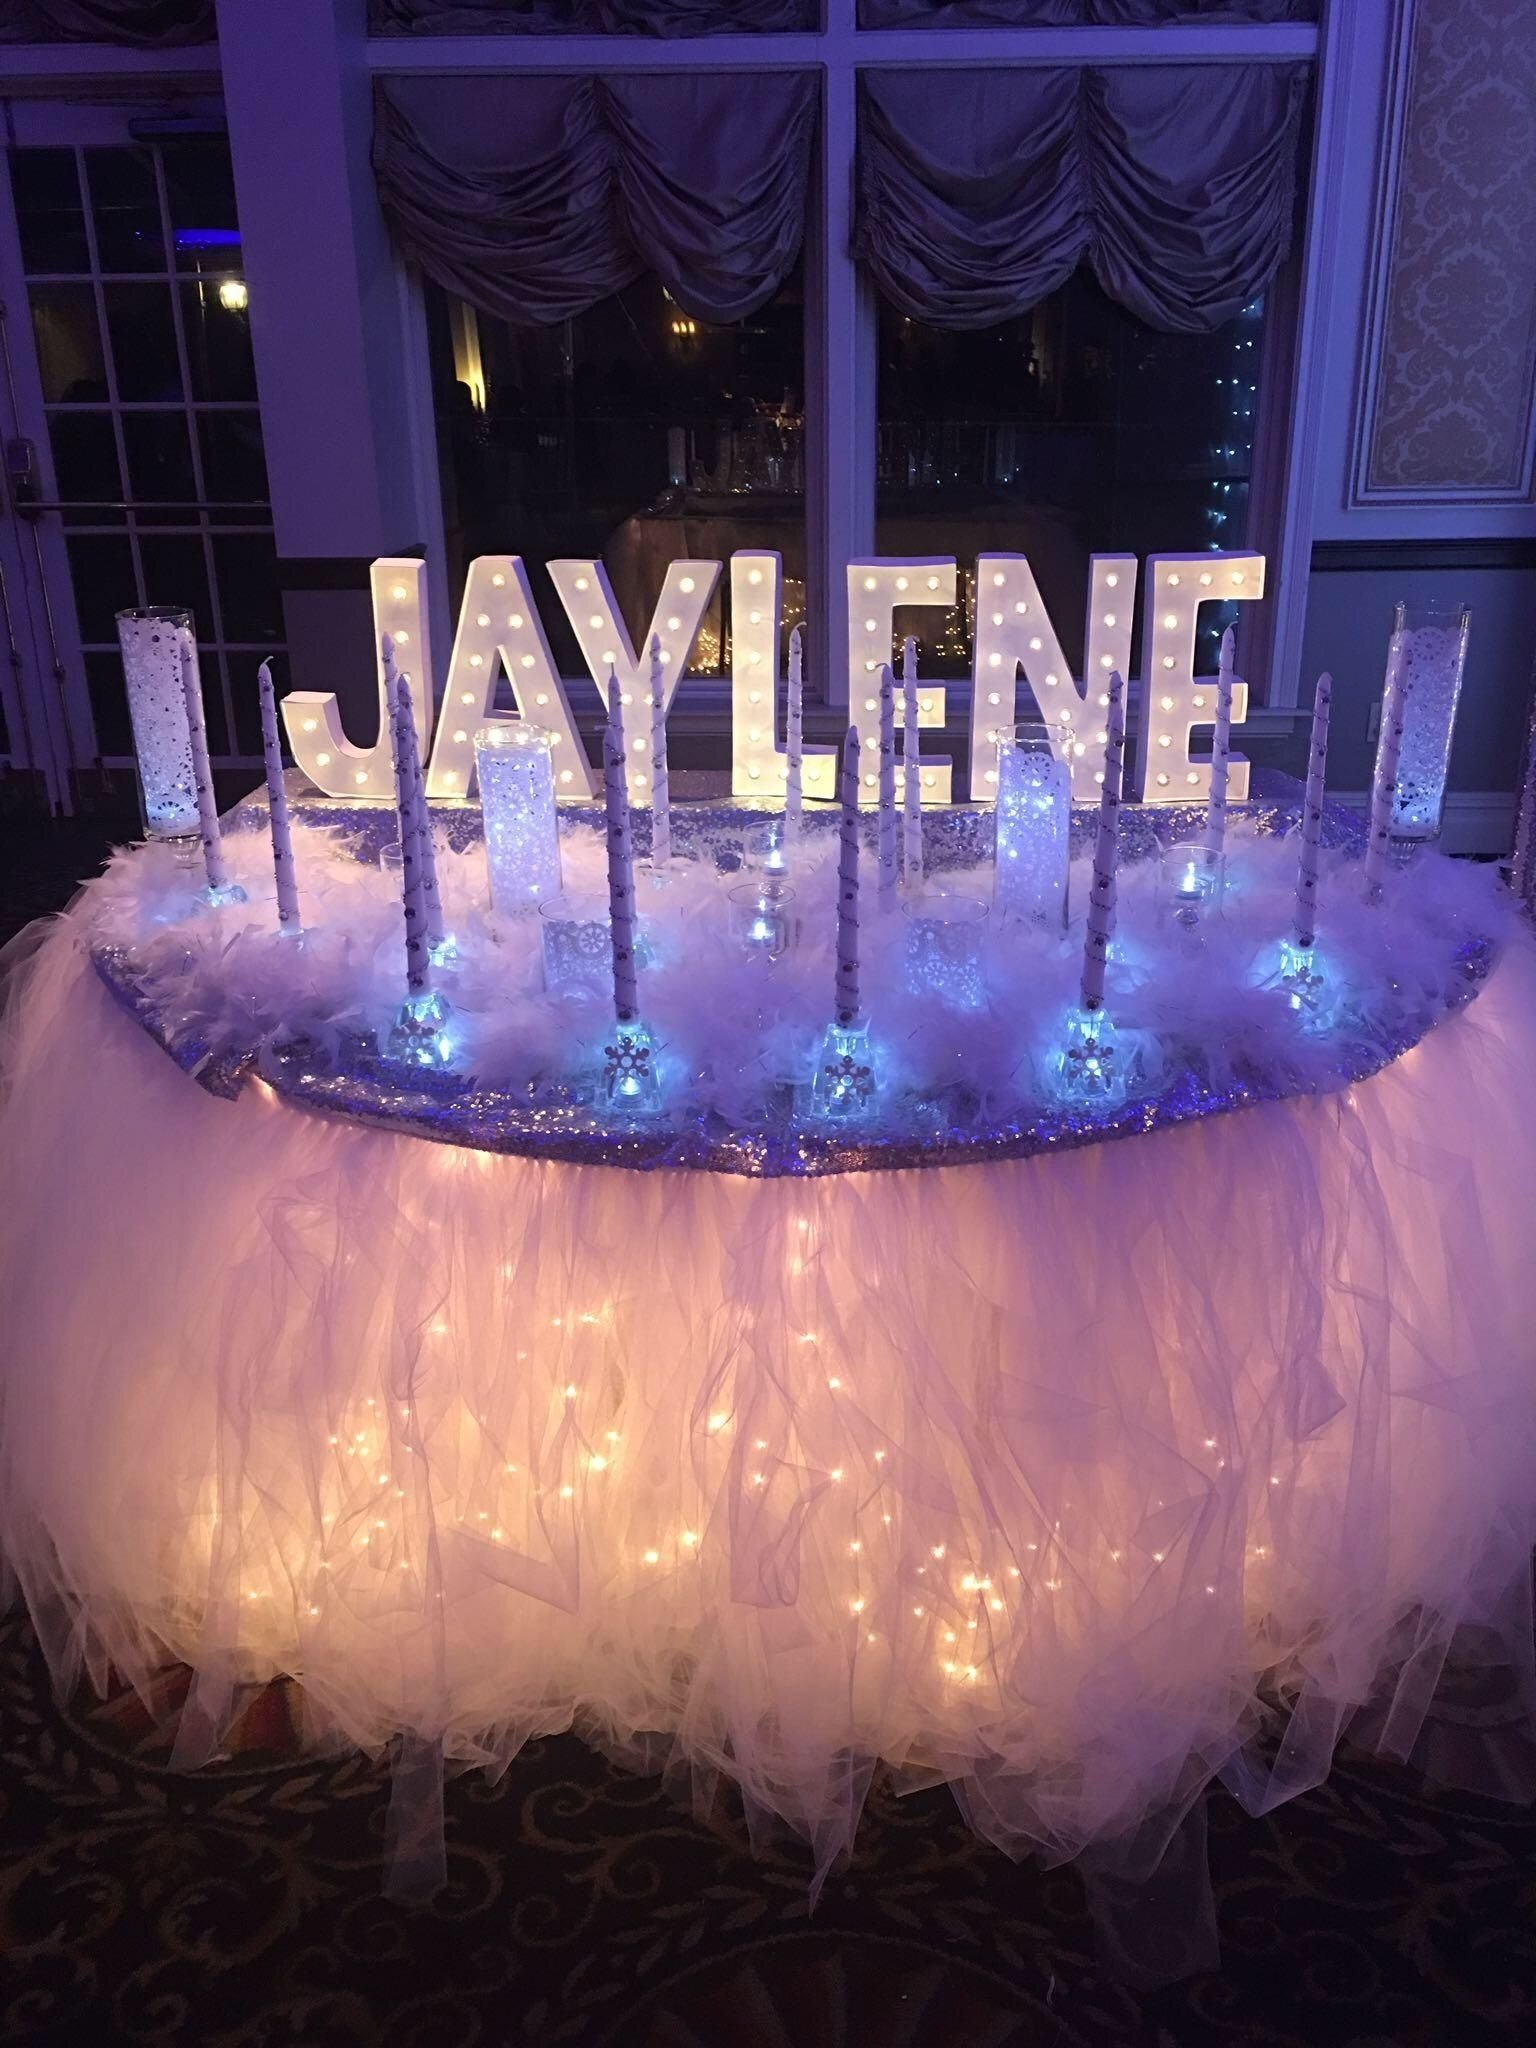 10 Awesome Ideas For Sweet 16 Party candle ceremony set up winter wonderland sweet 16 winter 4 2020